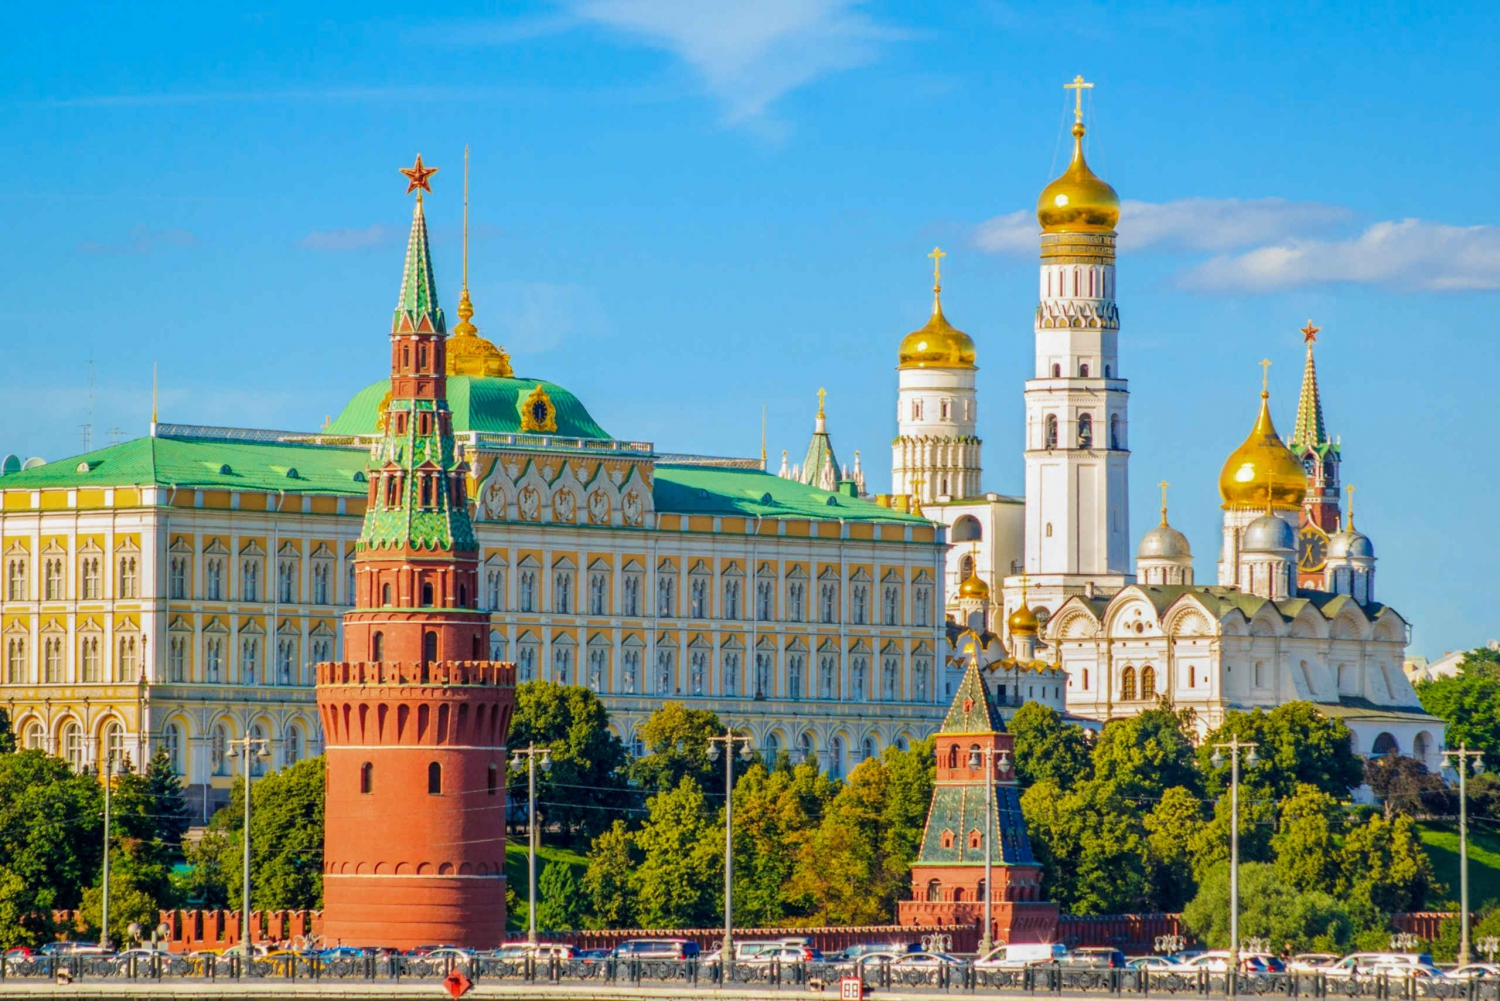 Kremlin Skip-the-Line Ticket and 30-min Introduction Tour